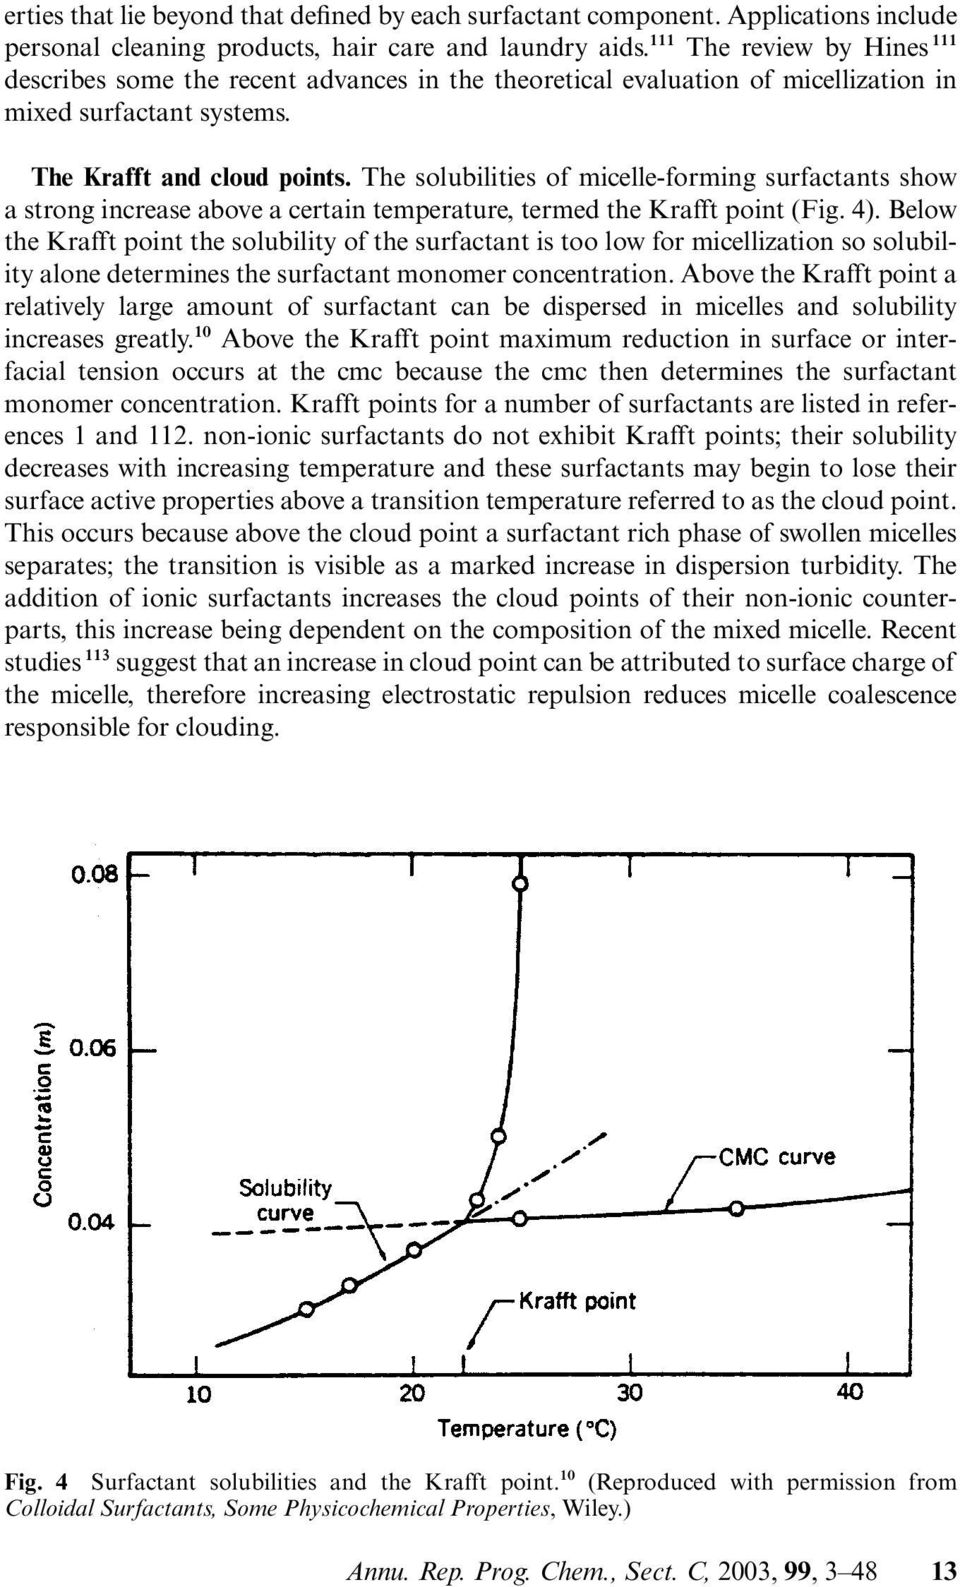 The solubilities of micelle-forming surfactants show a strong increase above a certain temperature, termed the Krafft point (Fig. 4).